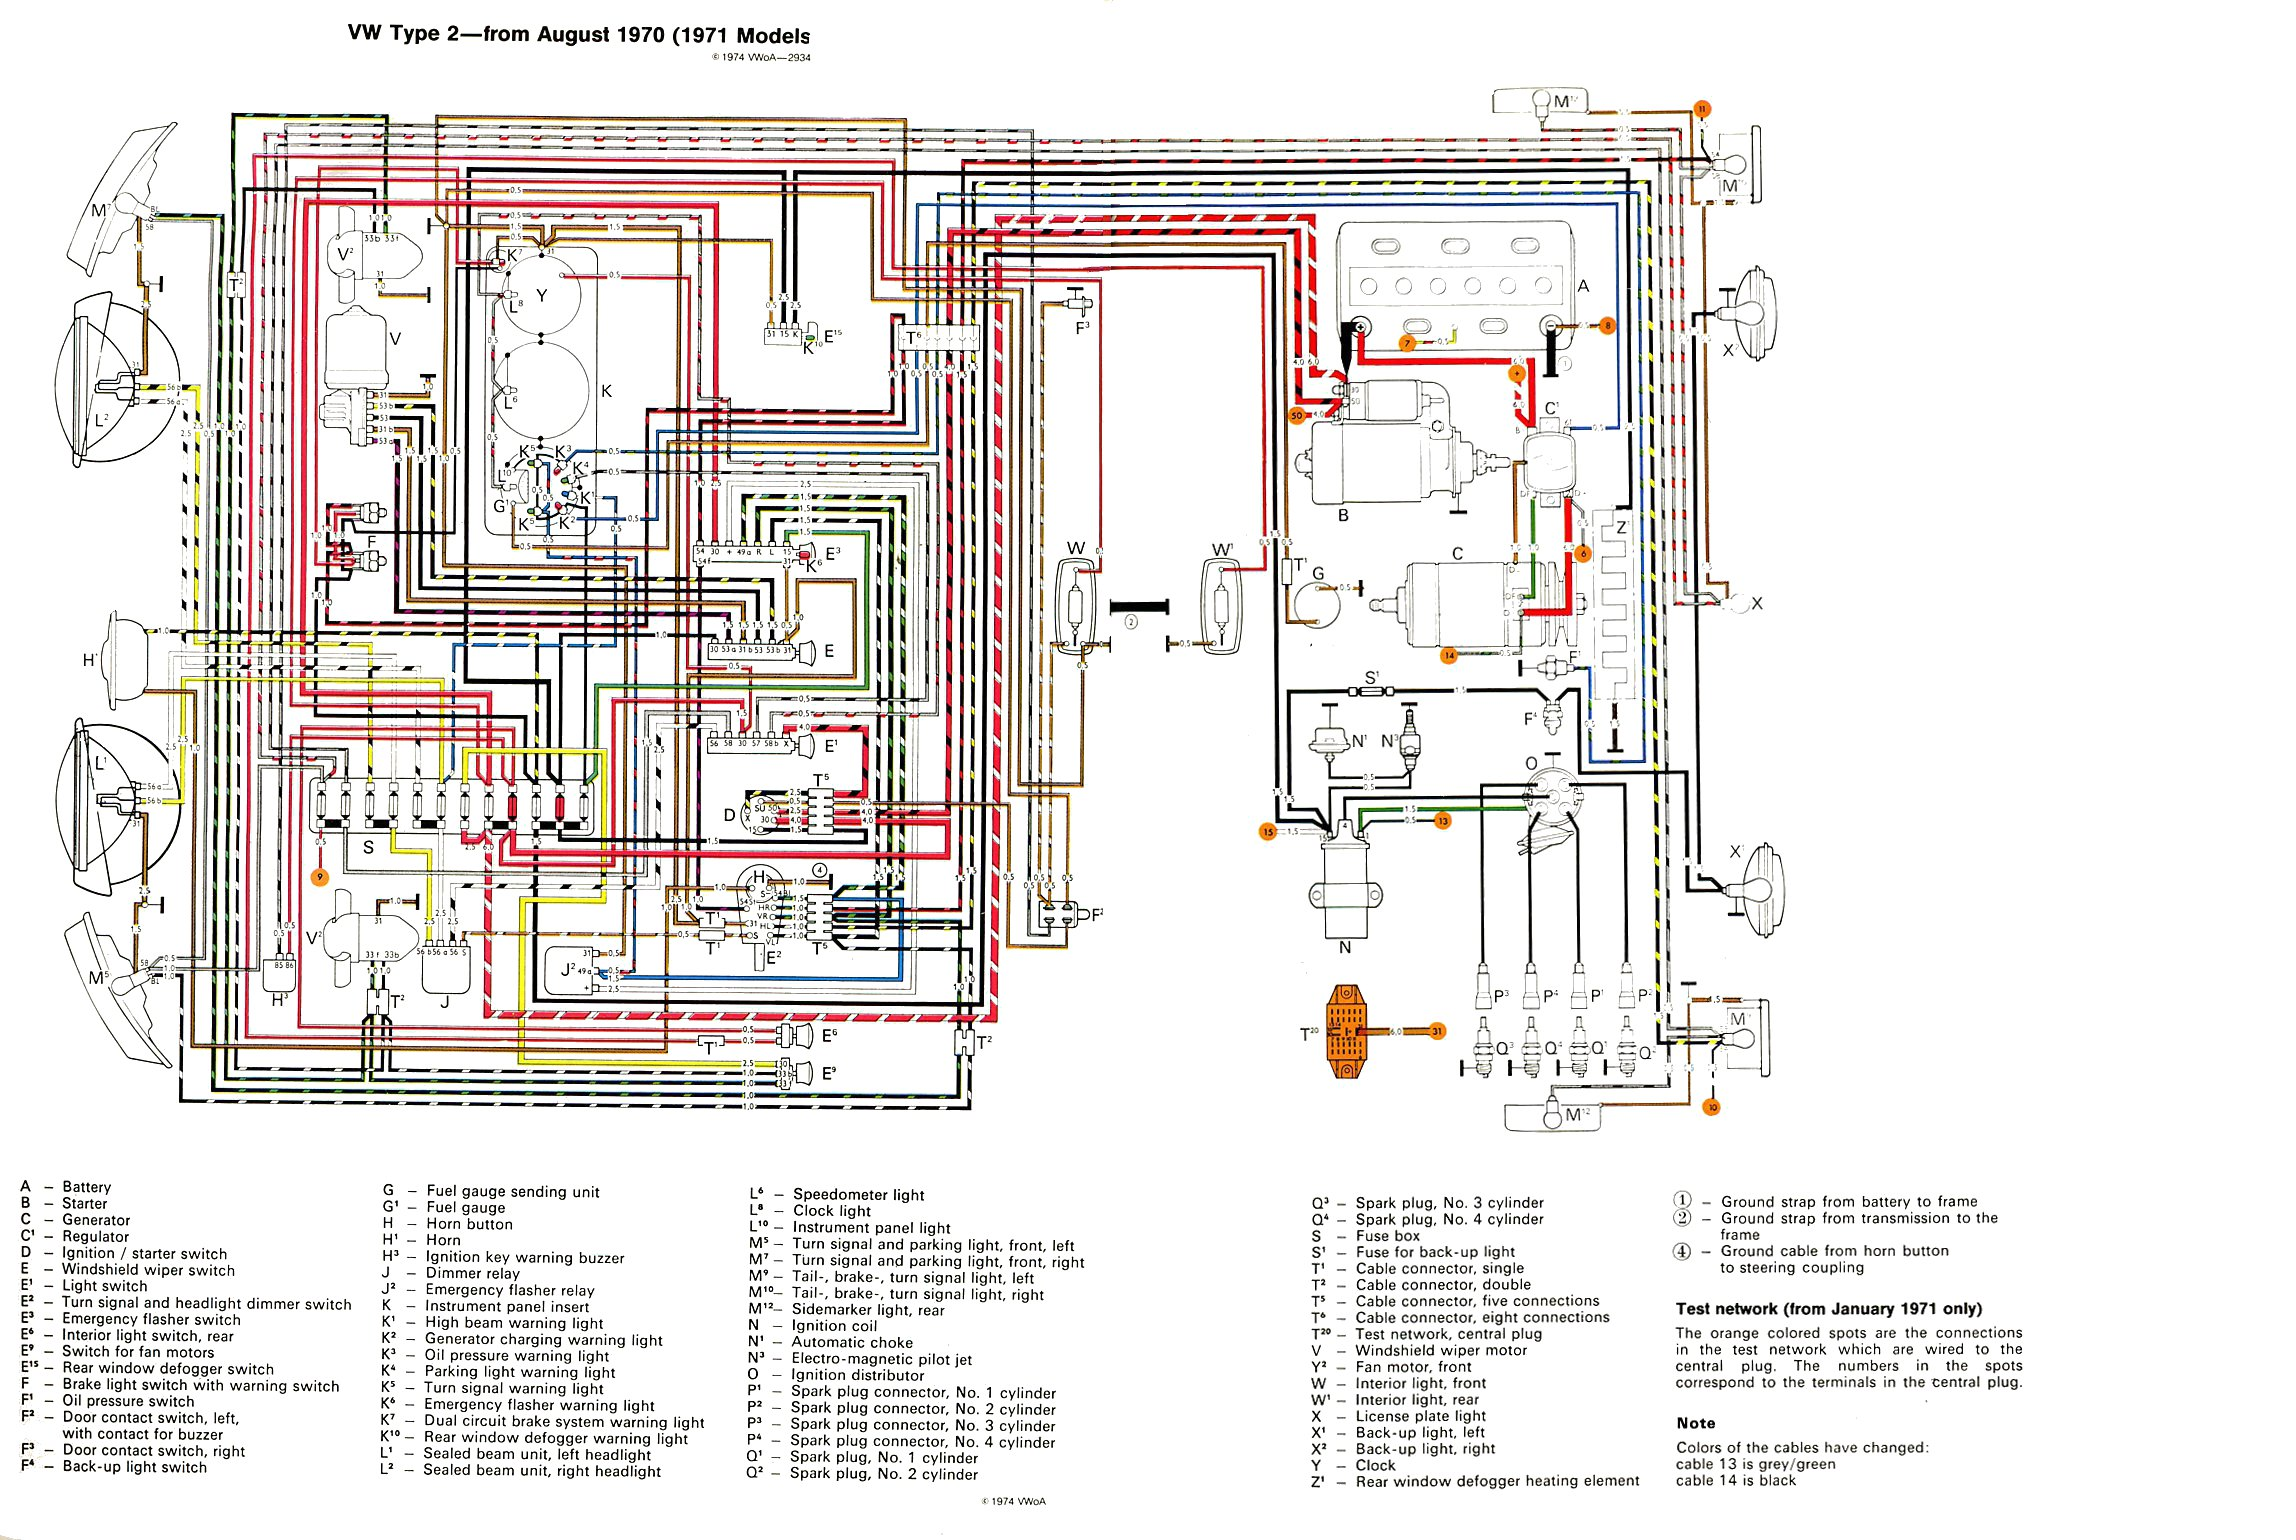 baybus_71 thesamba com type 2 wiring diagrams 2000 C5 Corvette Wiring Diagram at fashall.co